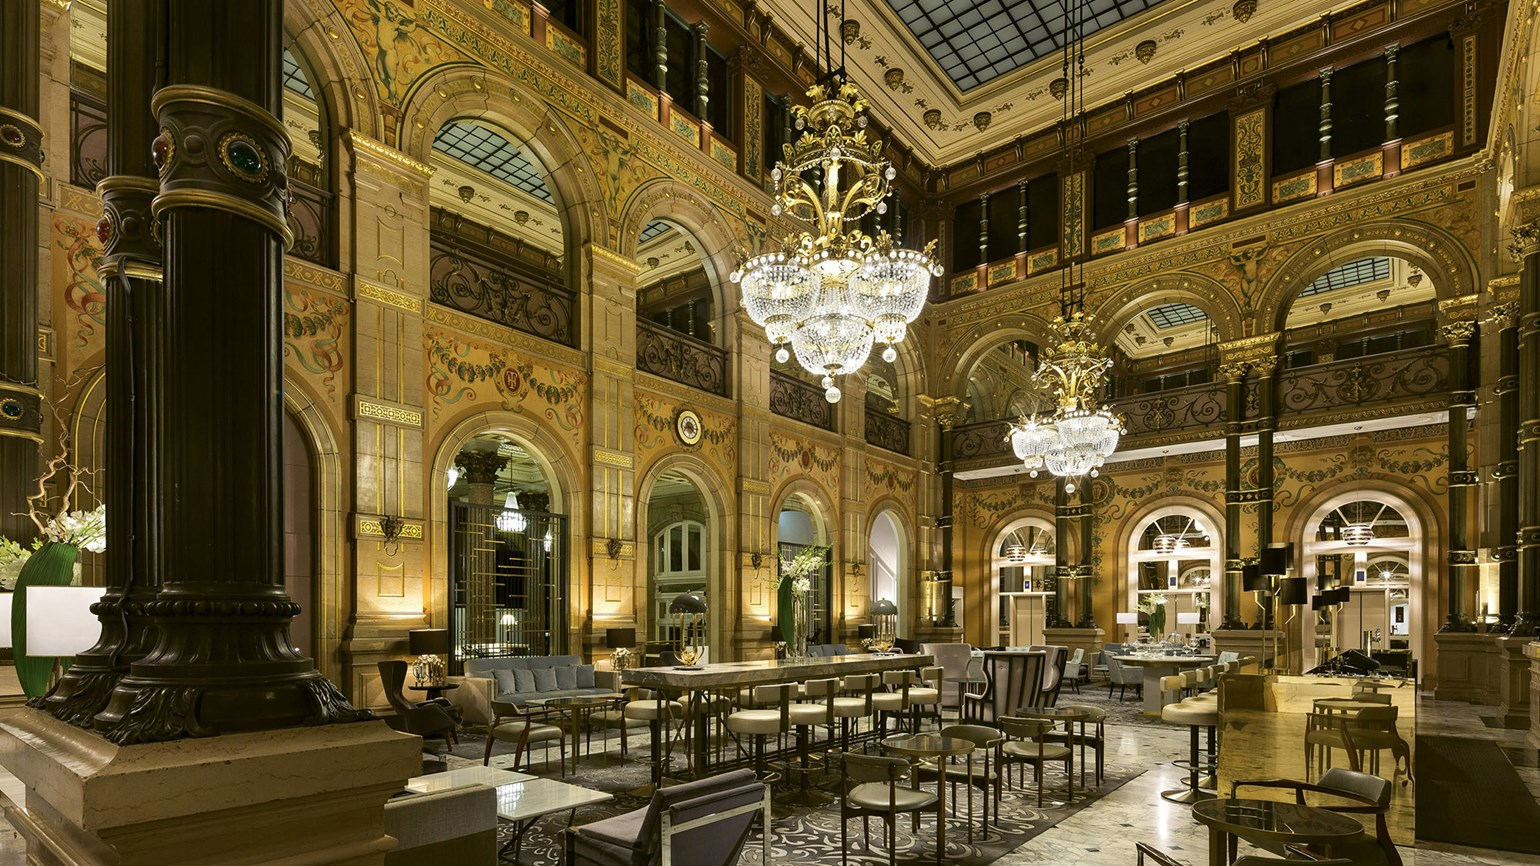 Belle epoque lives on at Hilton Paris Opera